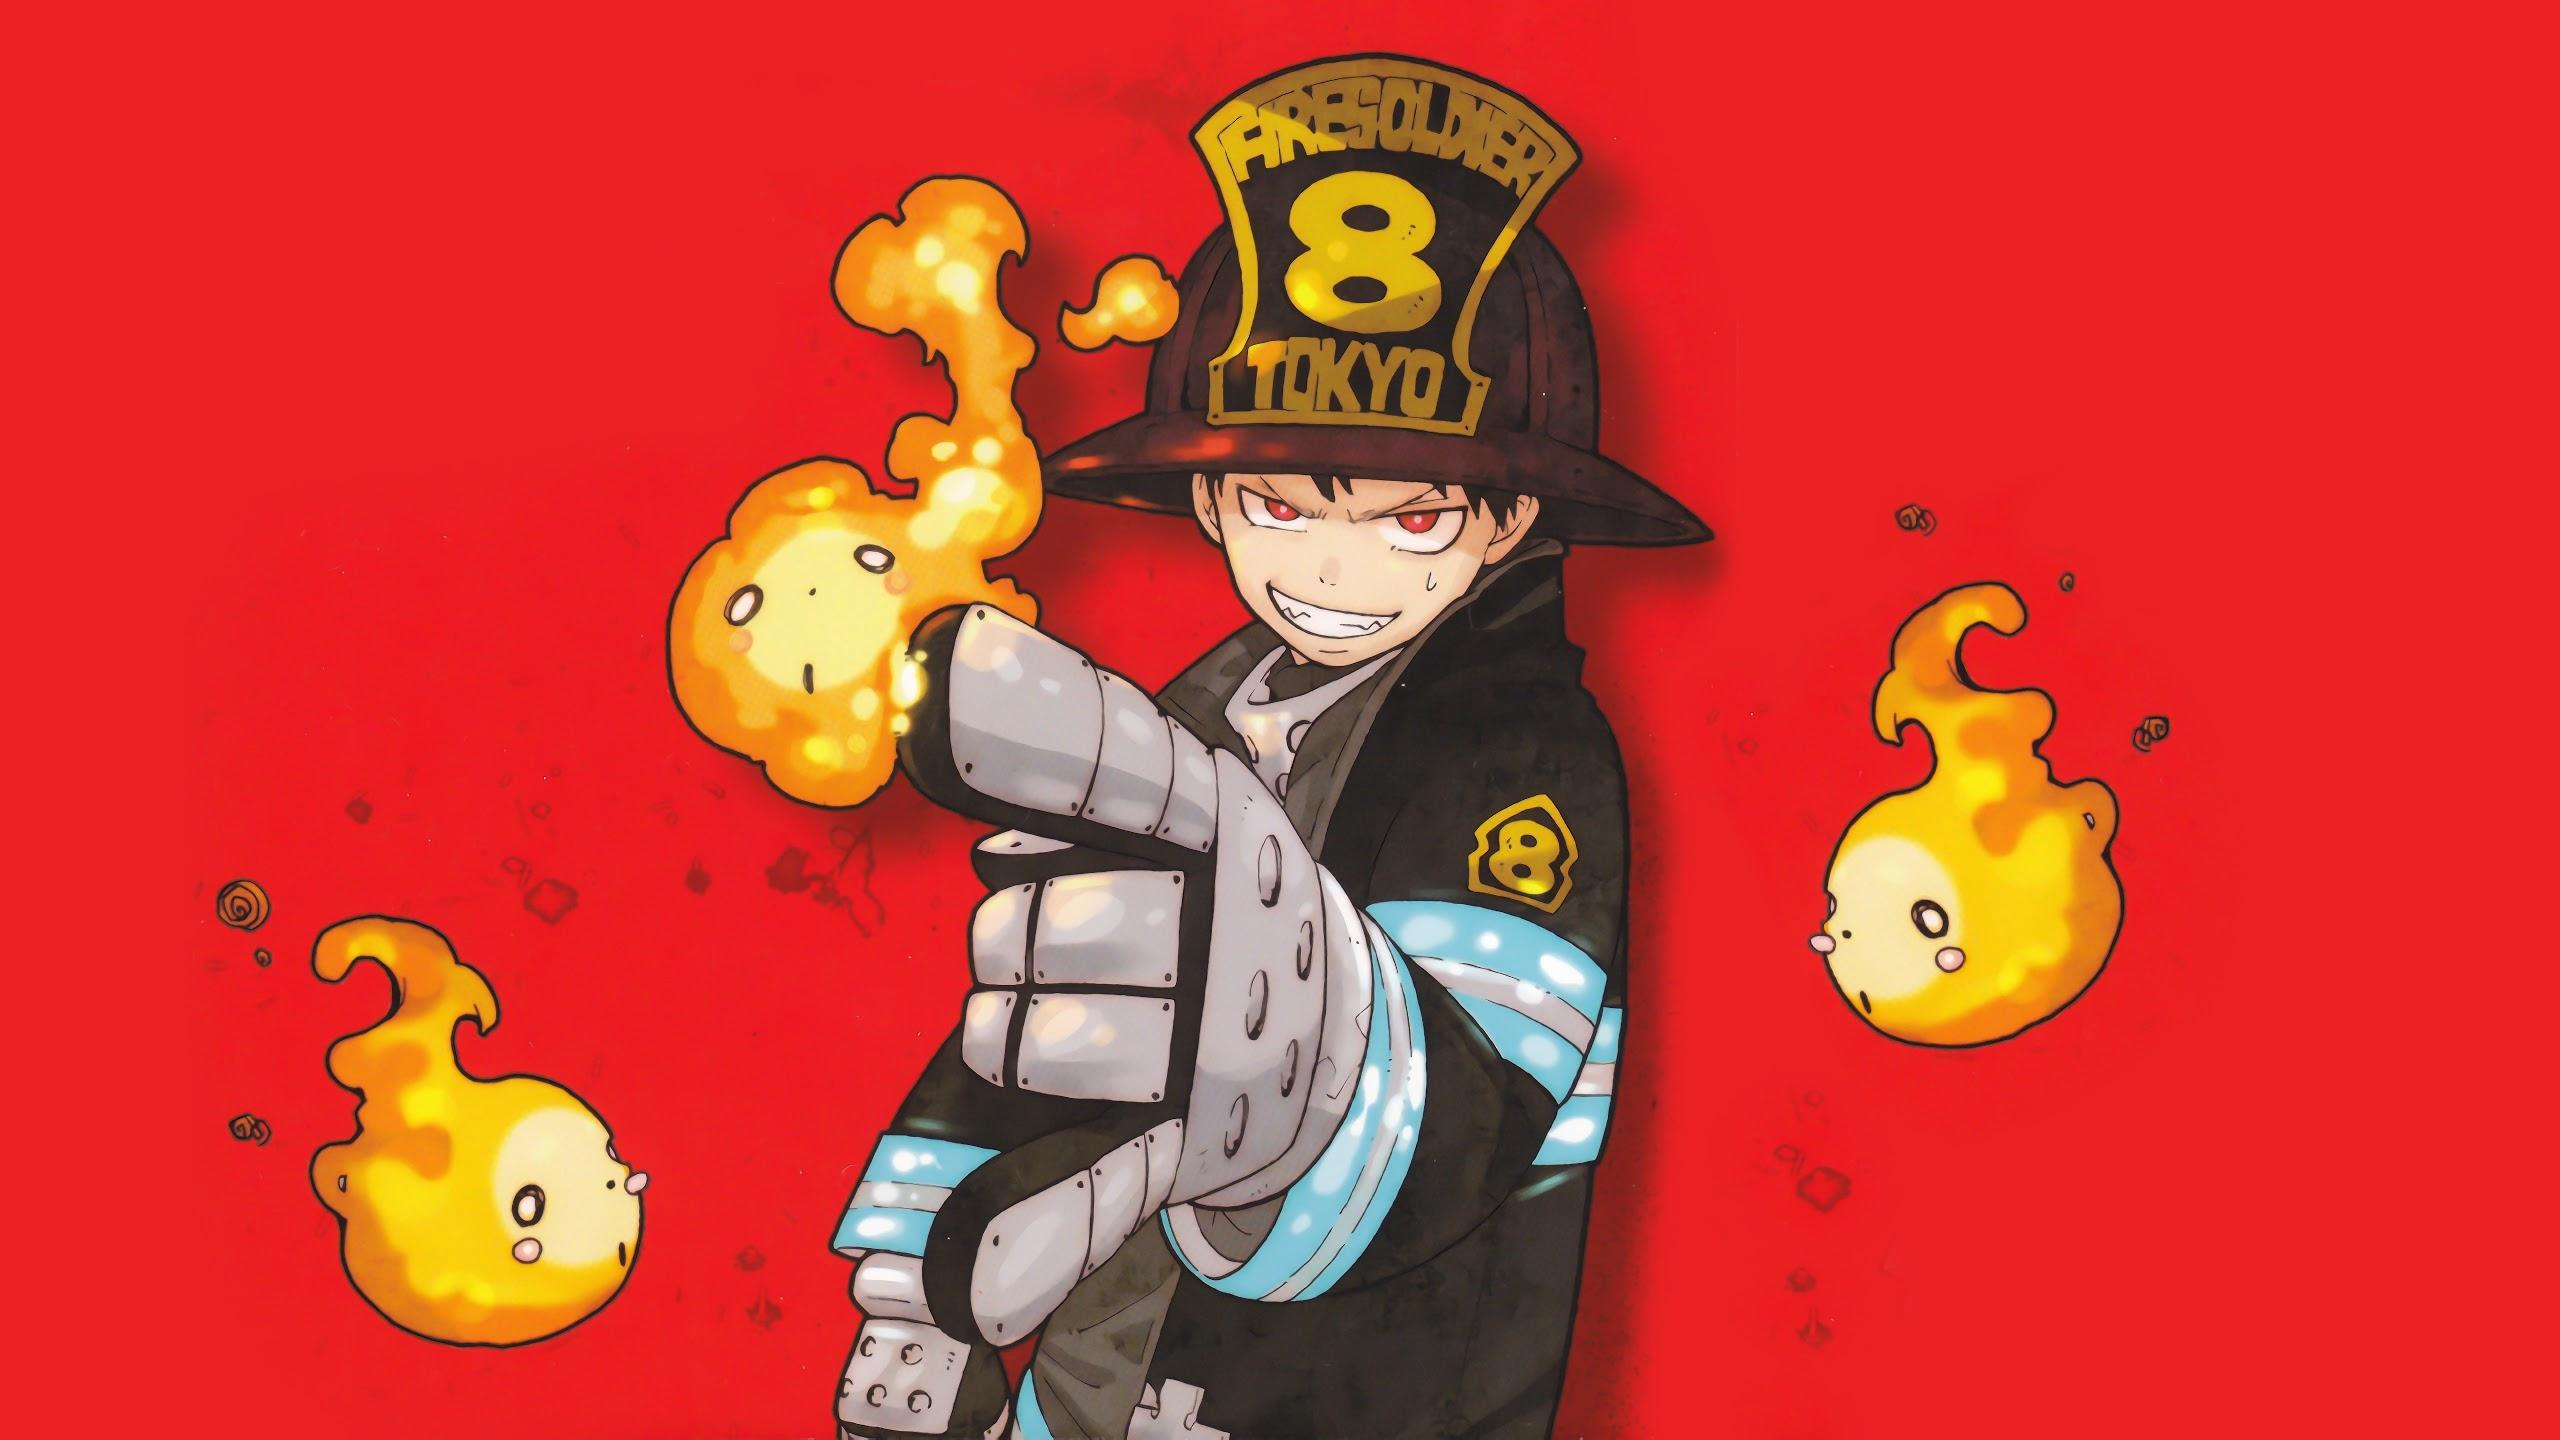 Fire Force Shinra Arthur Flames 8K Wallpapers